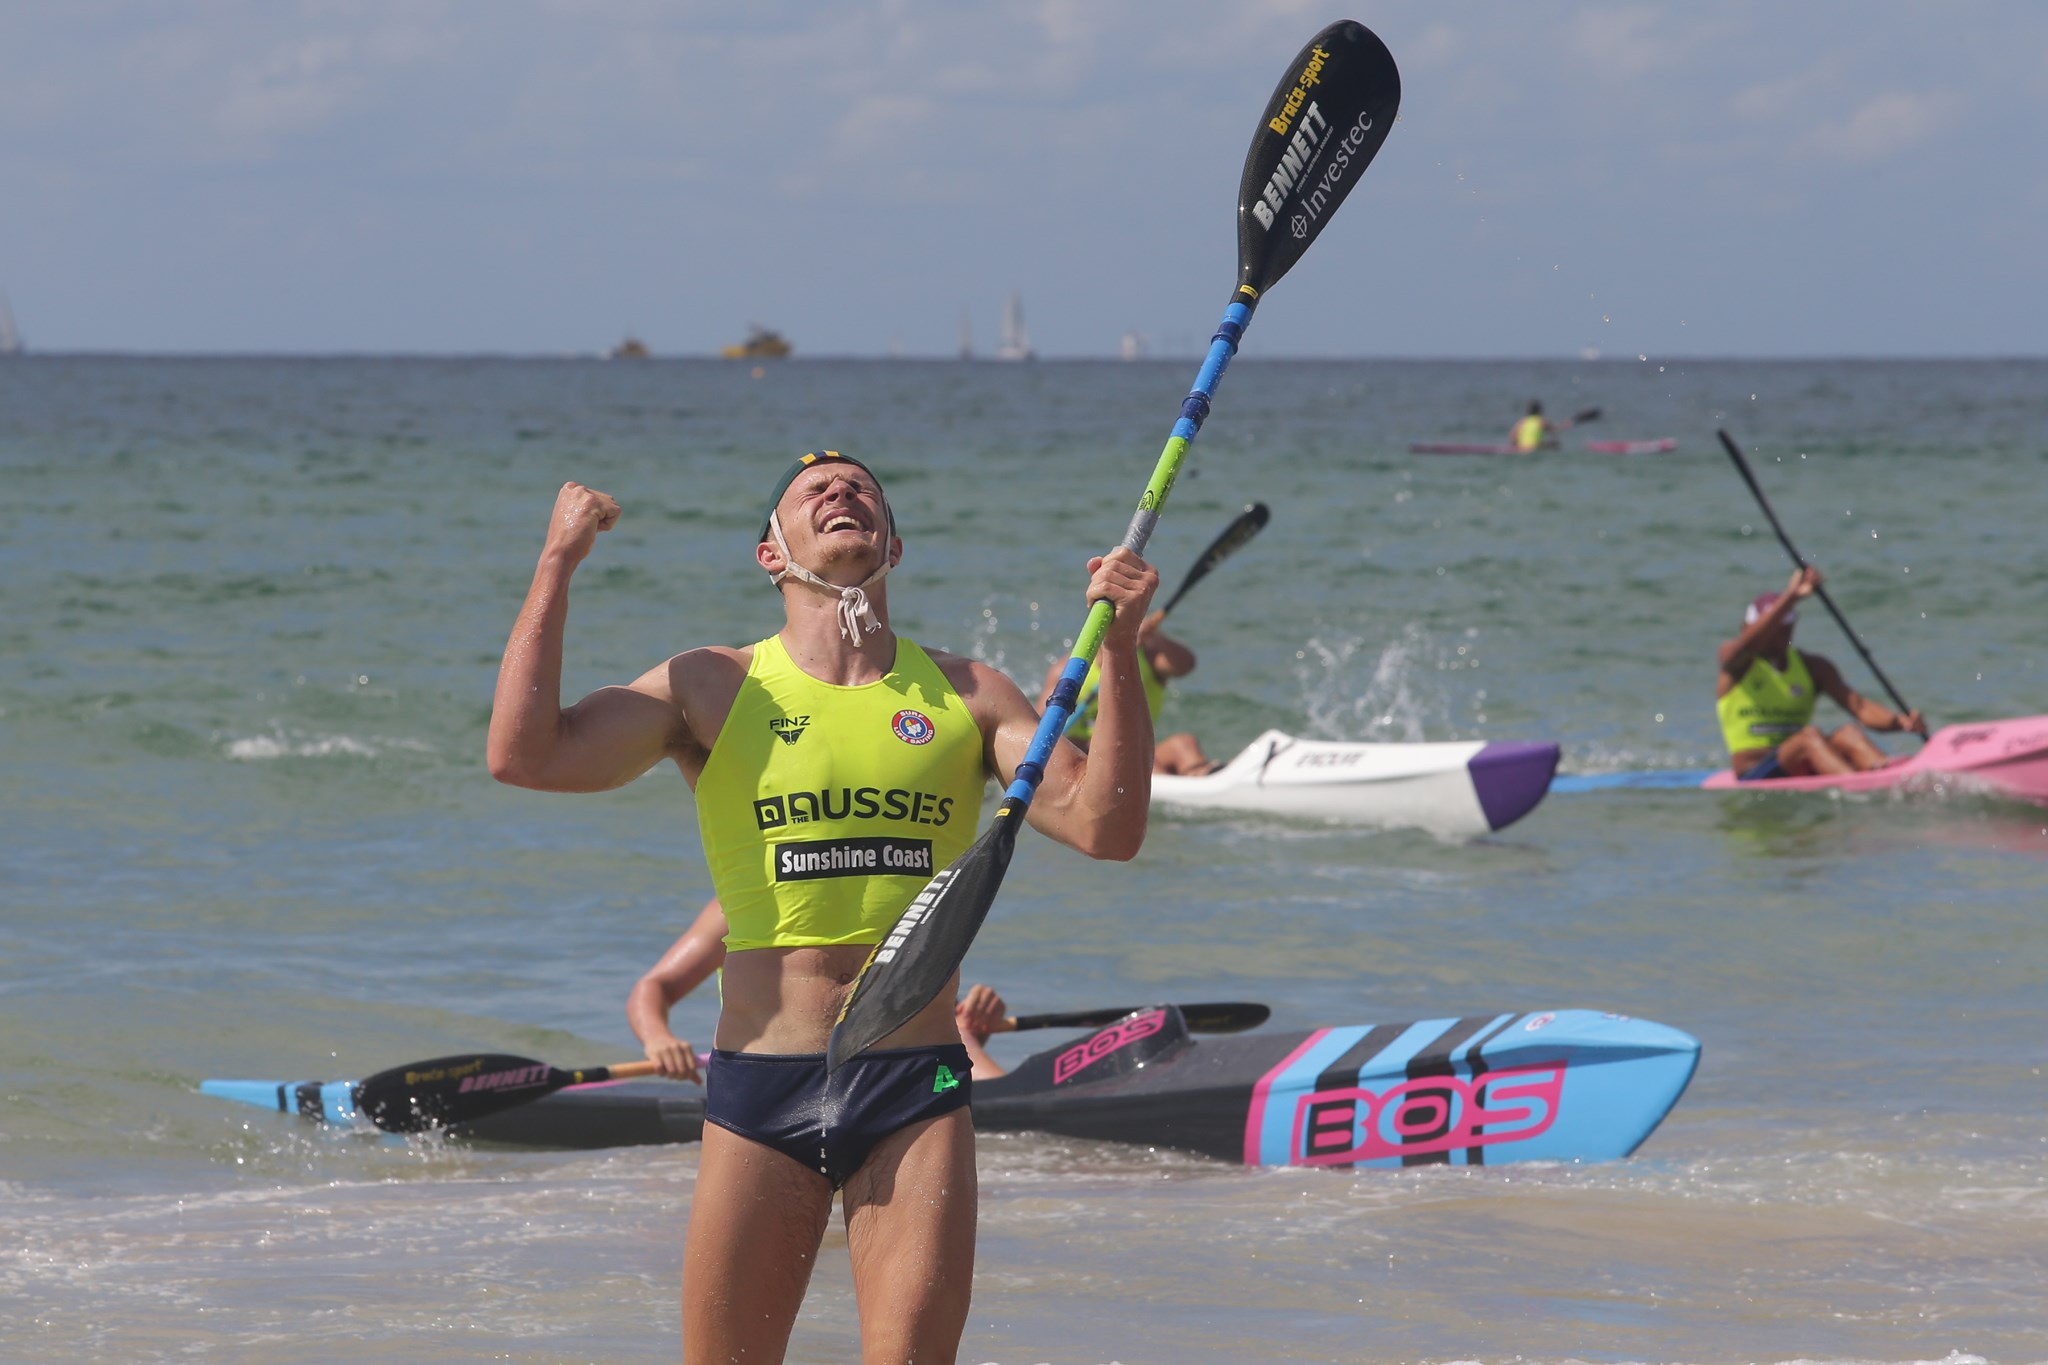 Fletcher Armstrong celebrates win on beach with ski paddle in hand